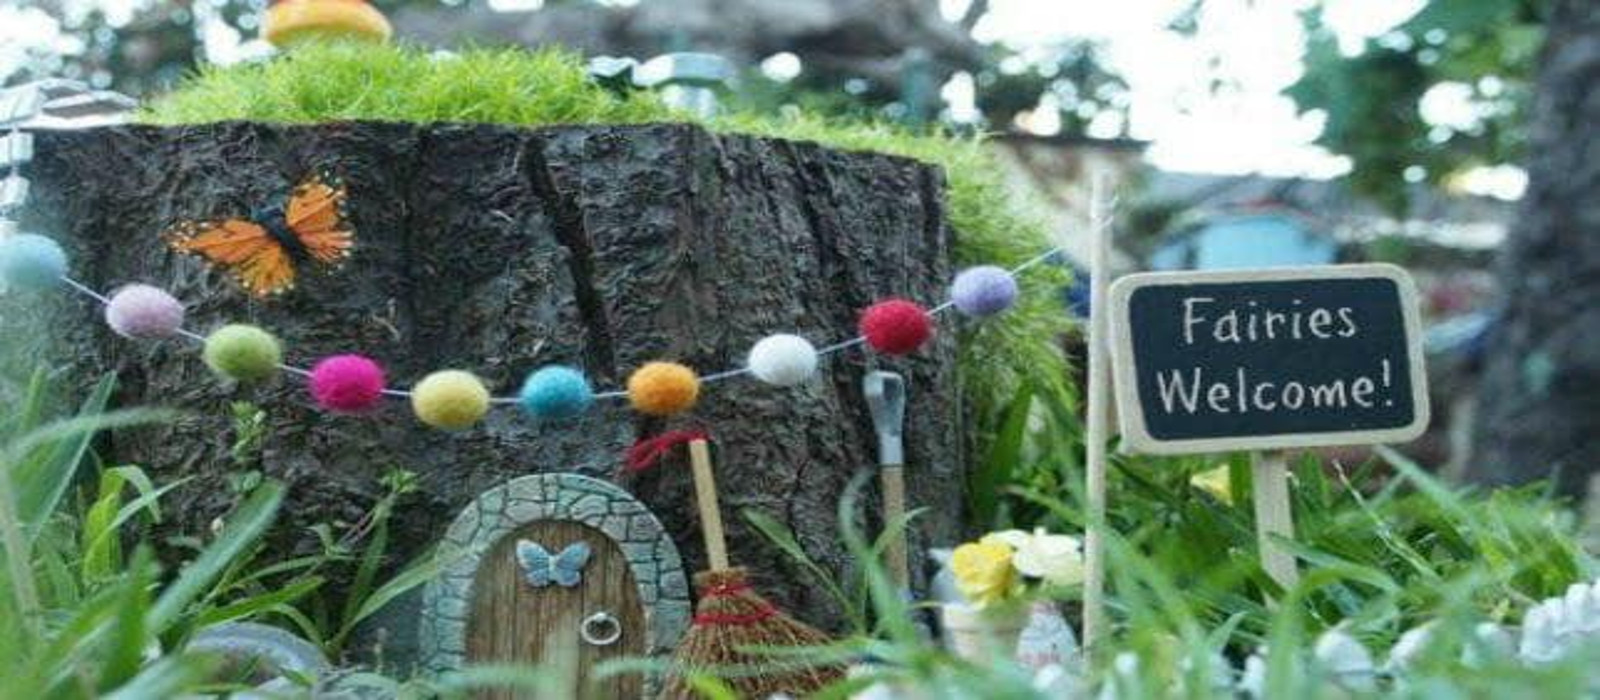 Fairy Garden Project in Palestine!